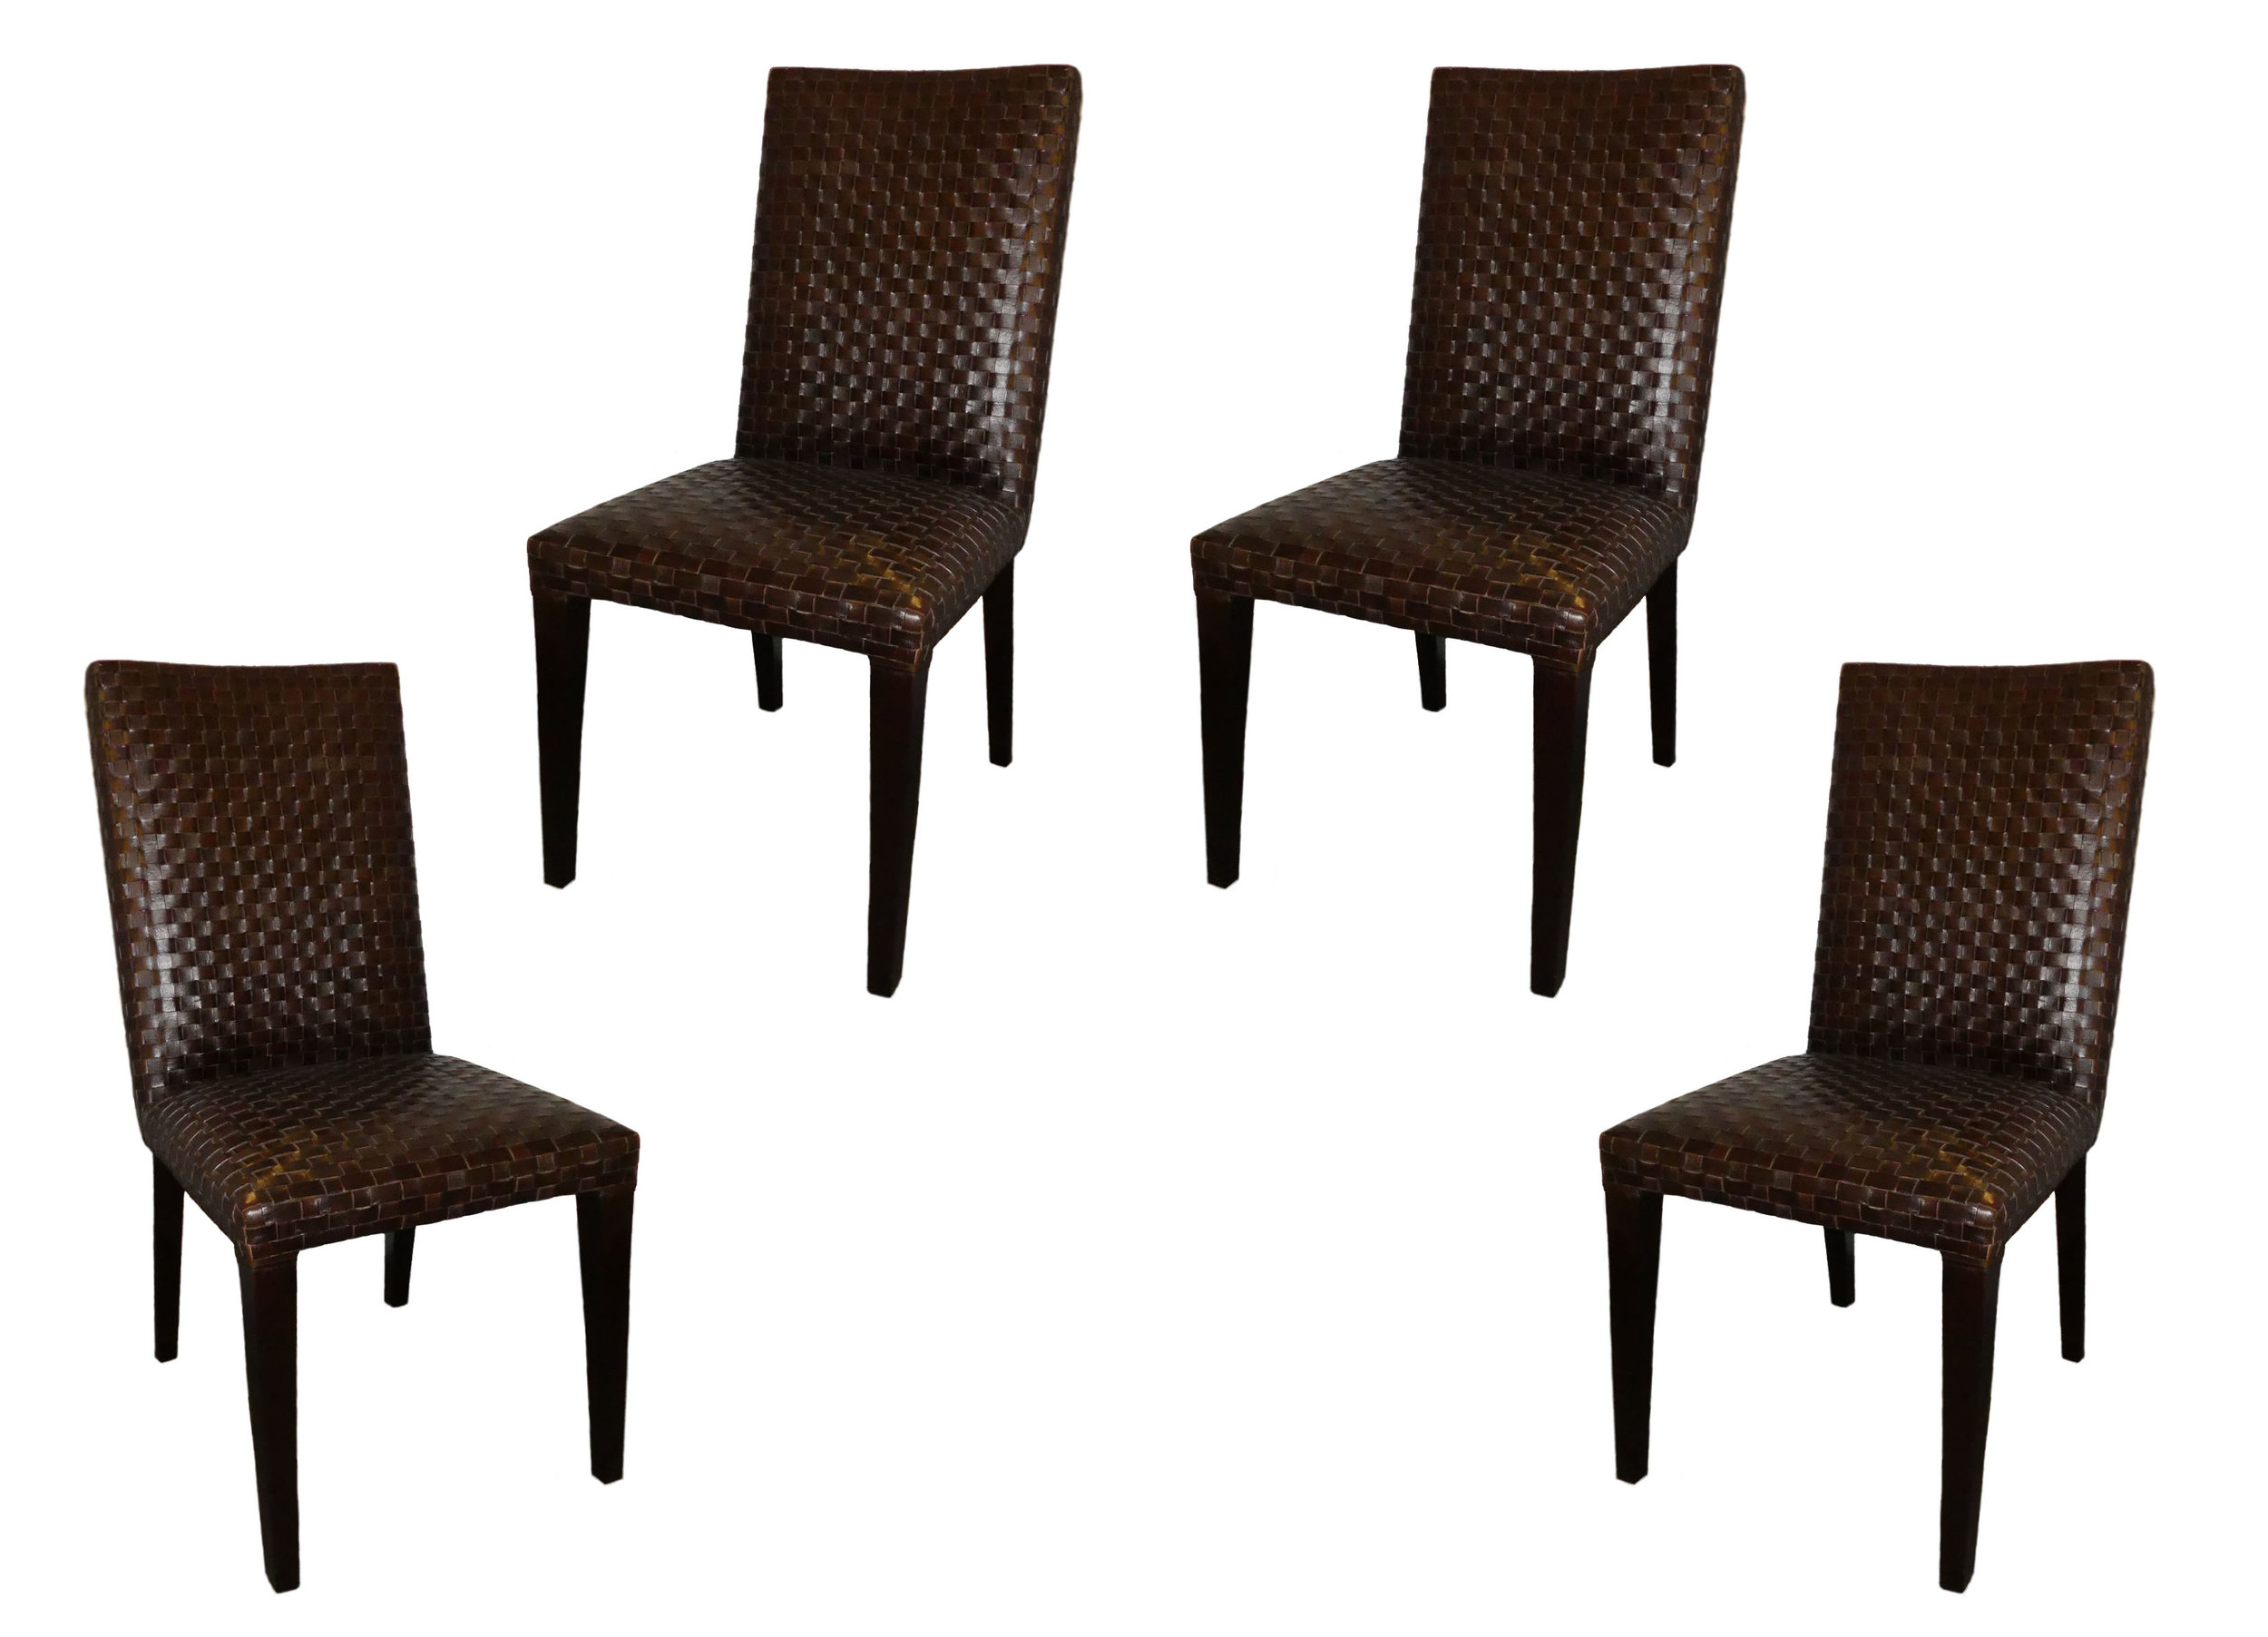 Stone International Italian Woven Leather Dining Chairs